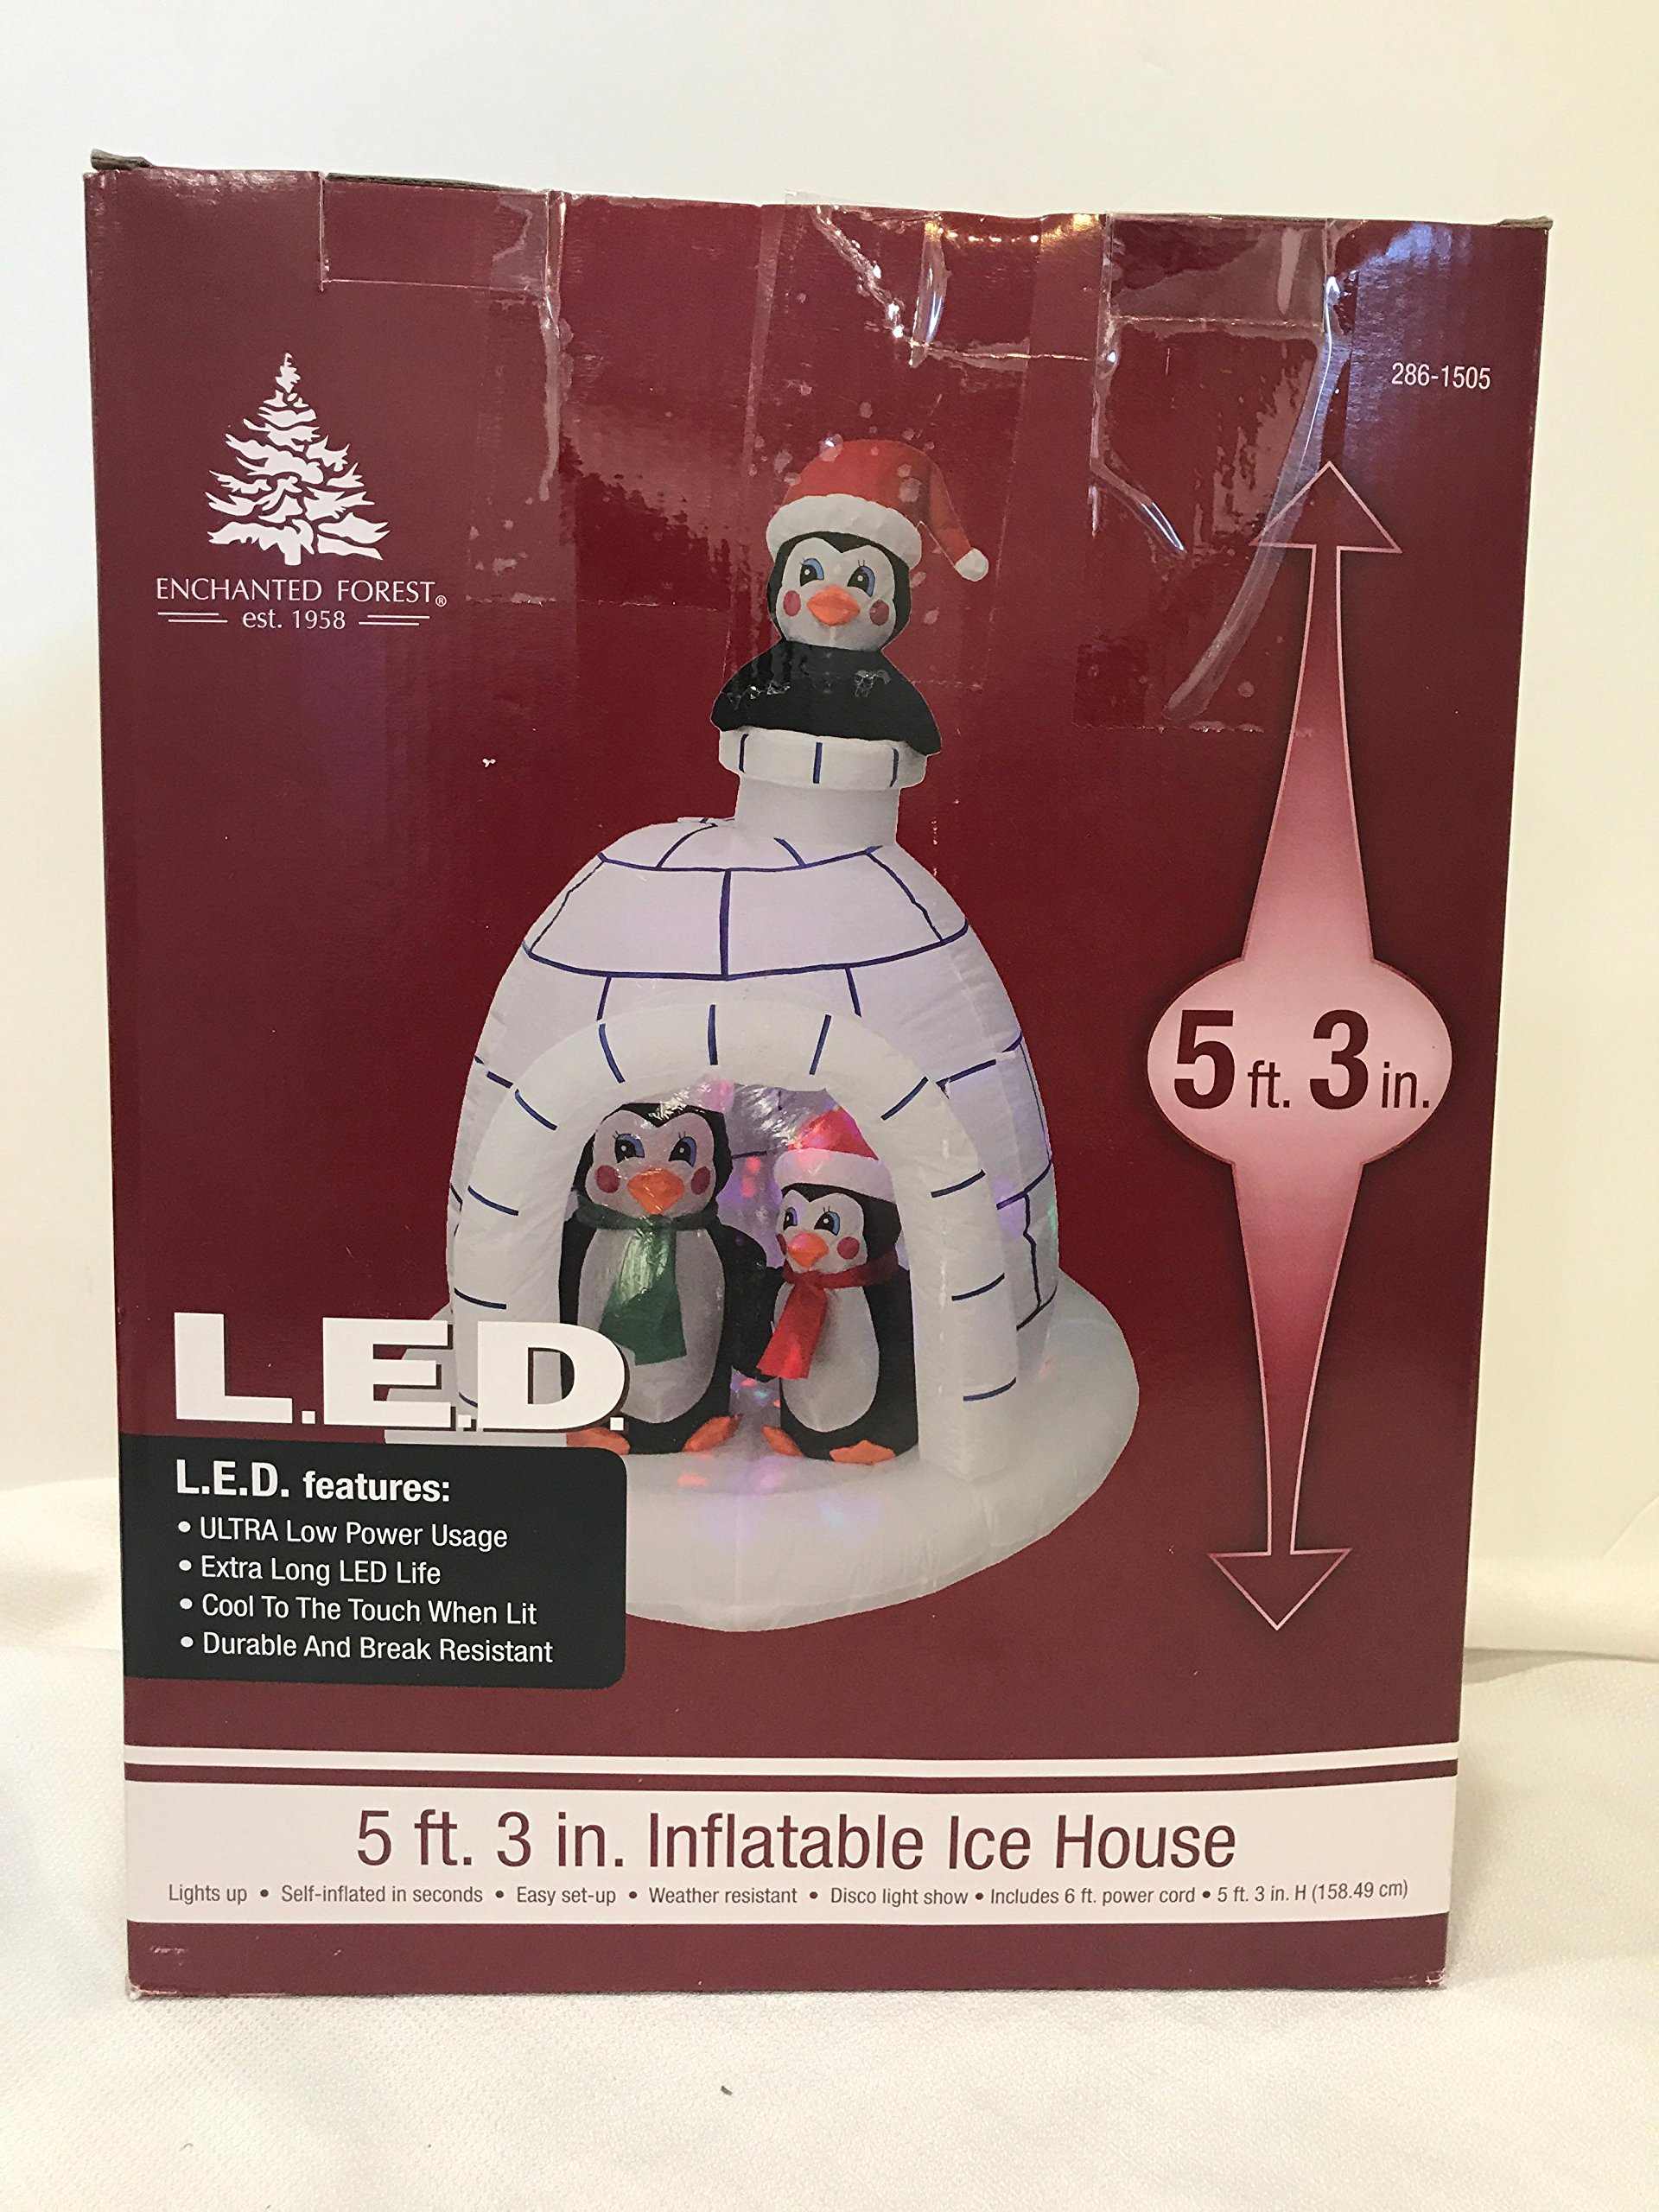 Inflatable Ice House Igloo with Penguins 5' 3'' tall LED